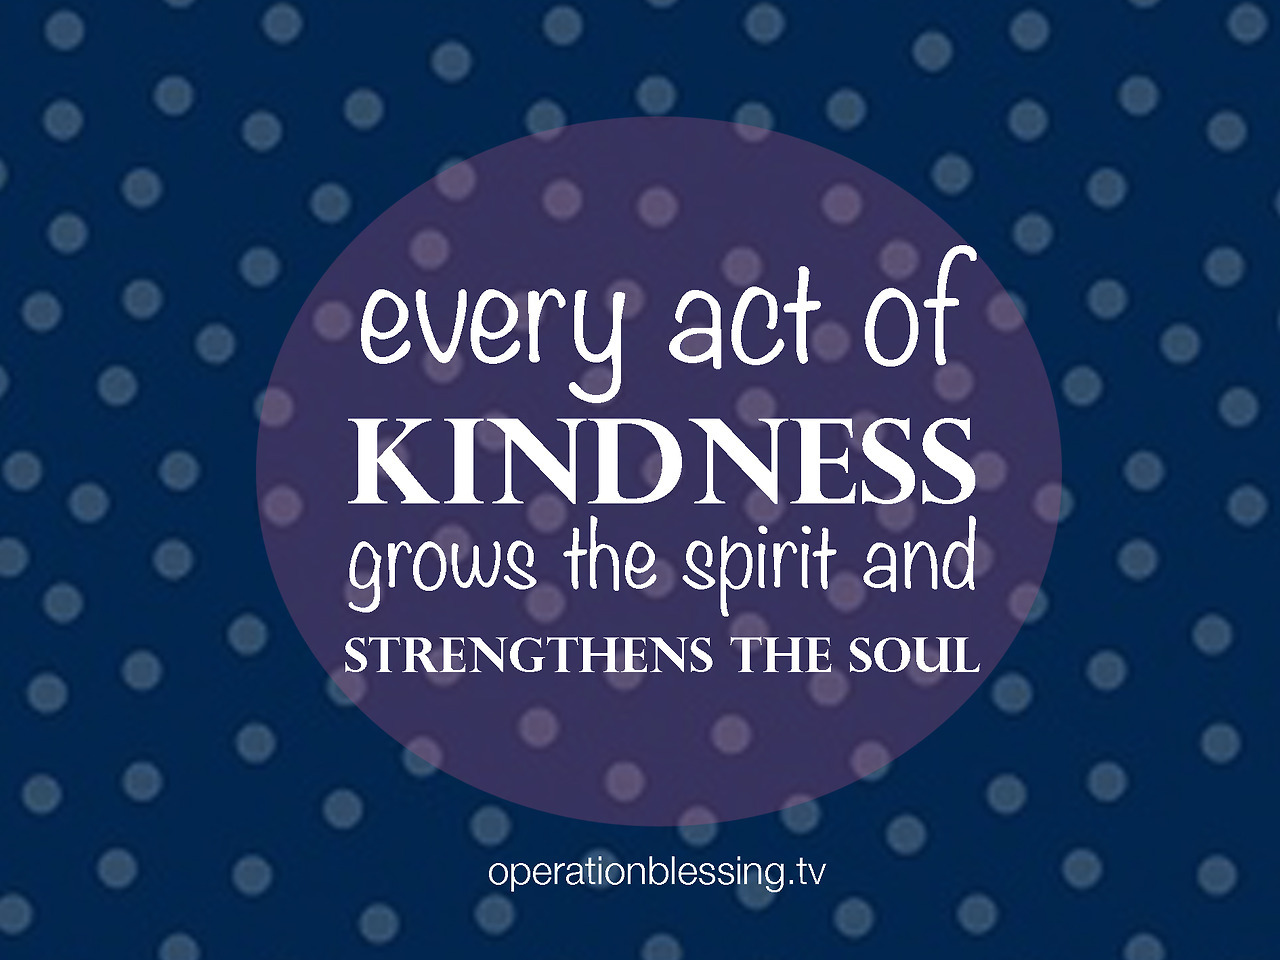 Act of kindness quote Every act of kindness grows the spirit and strengthens the soul